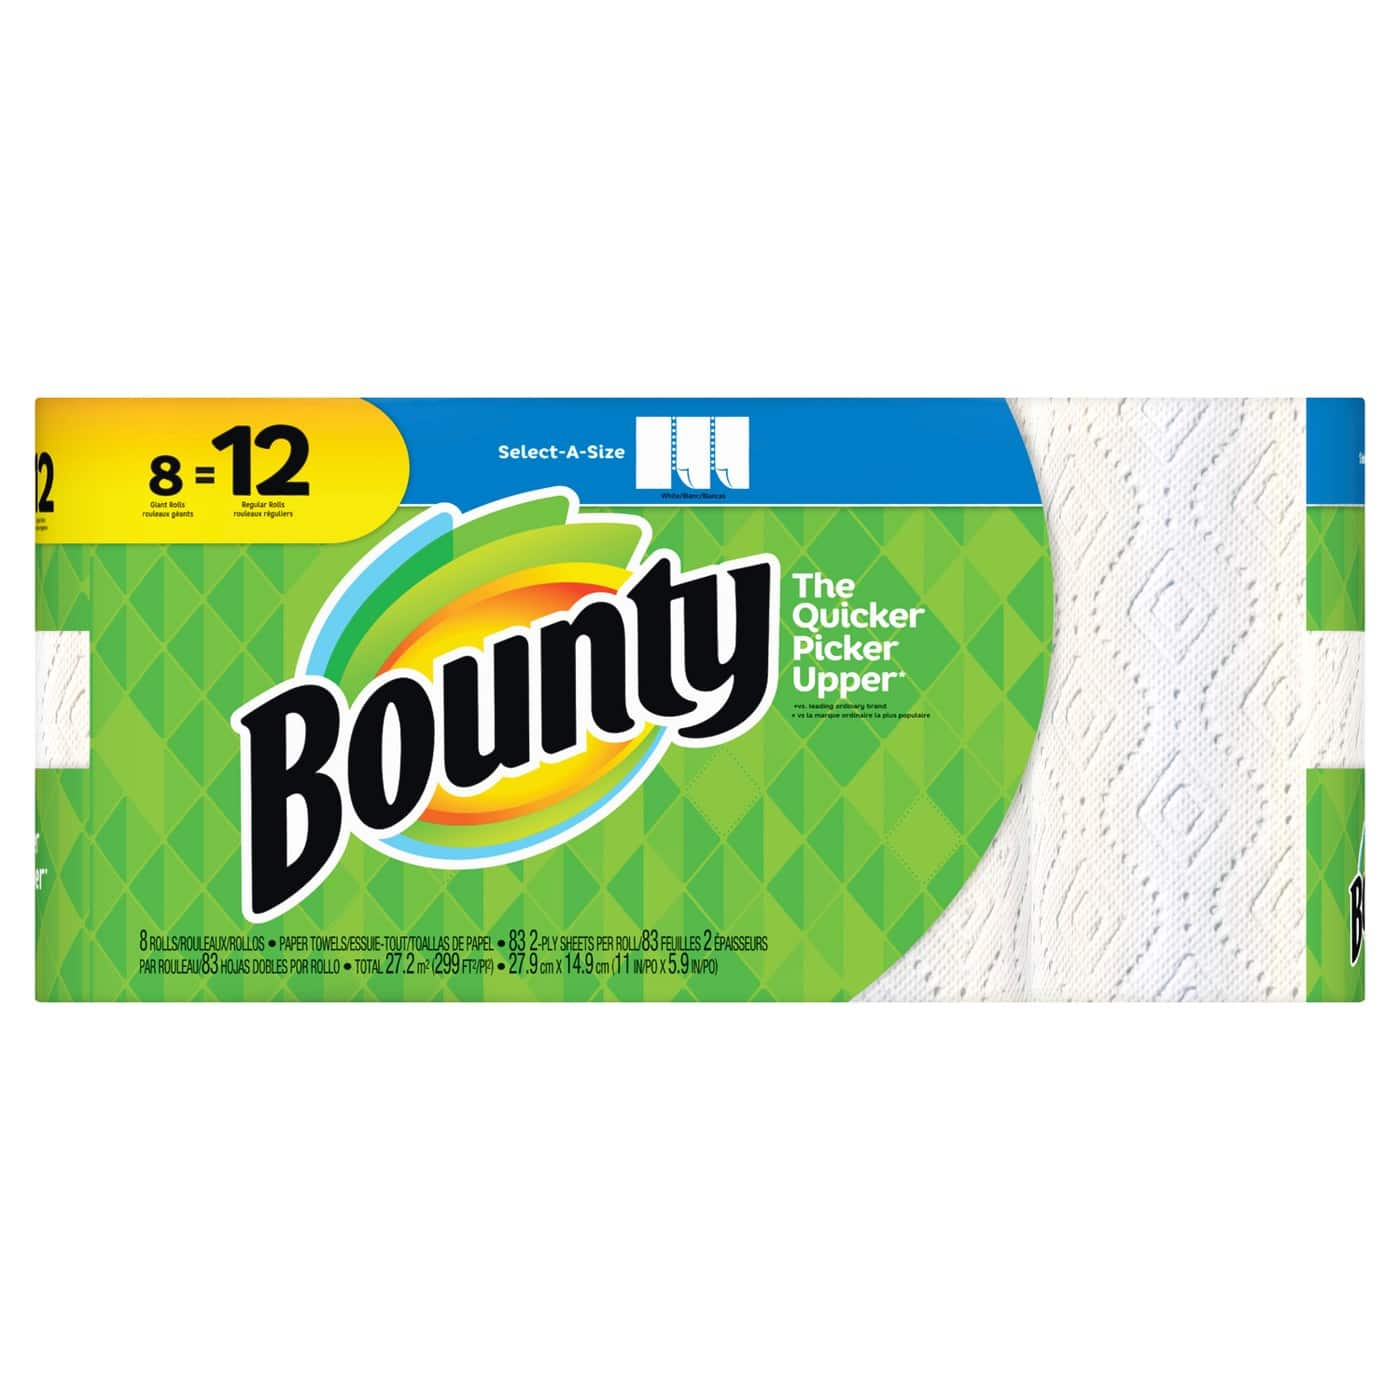 24-Ct Bounty Select-A-Size Giant Roll Paper Towels + $10 Target Gift Card $28.40 & More + Free Shipping